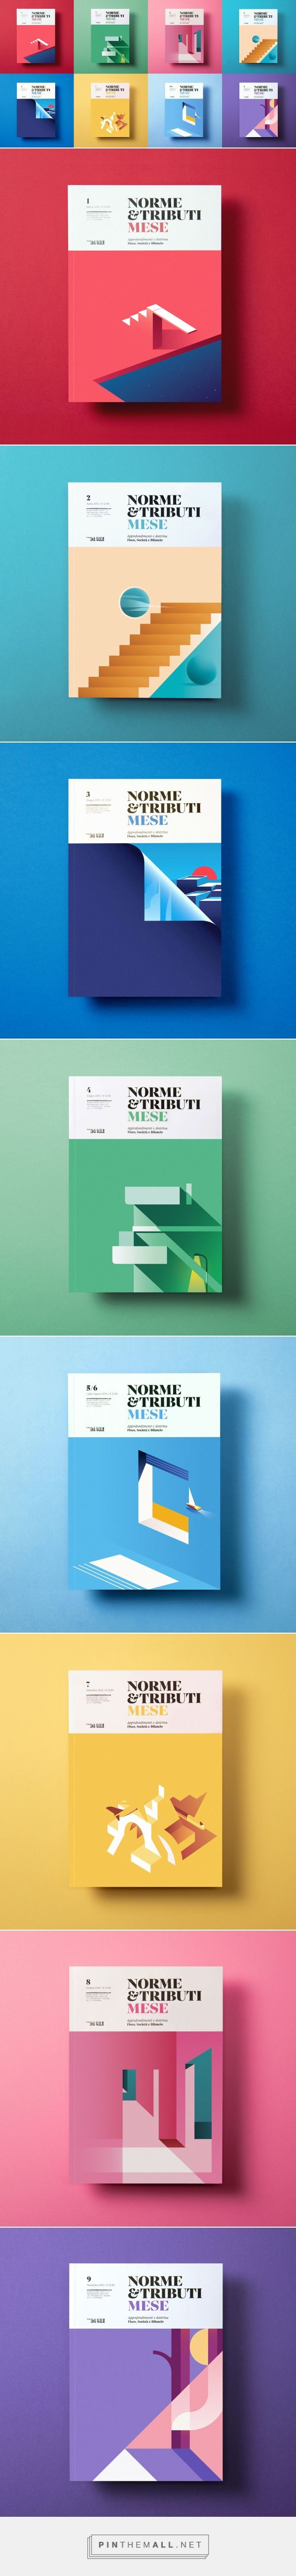 Cover Design by Ray Oranges | Abduzeedo Design Inspiration... - a grouped images picture - Pin Them All